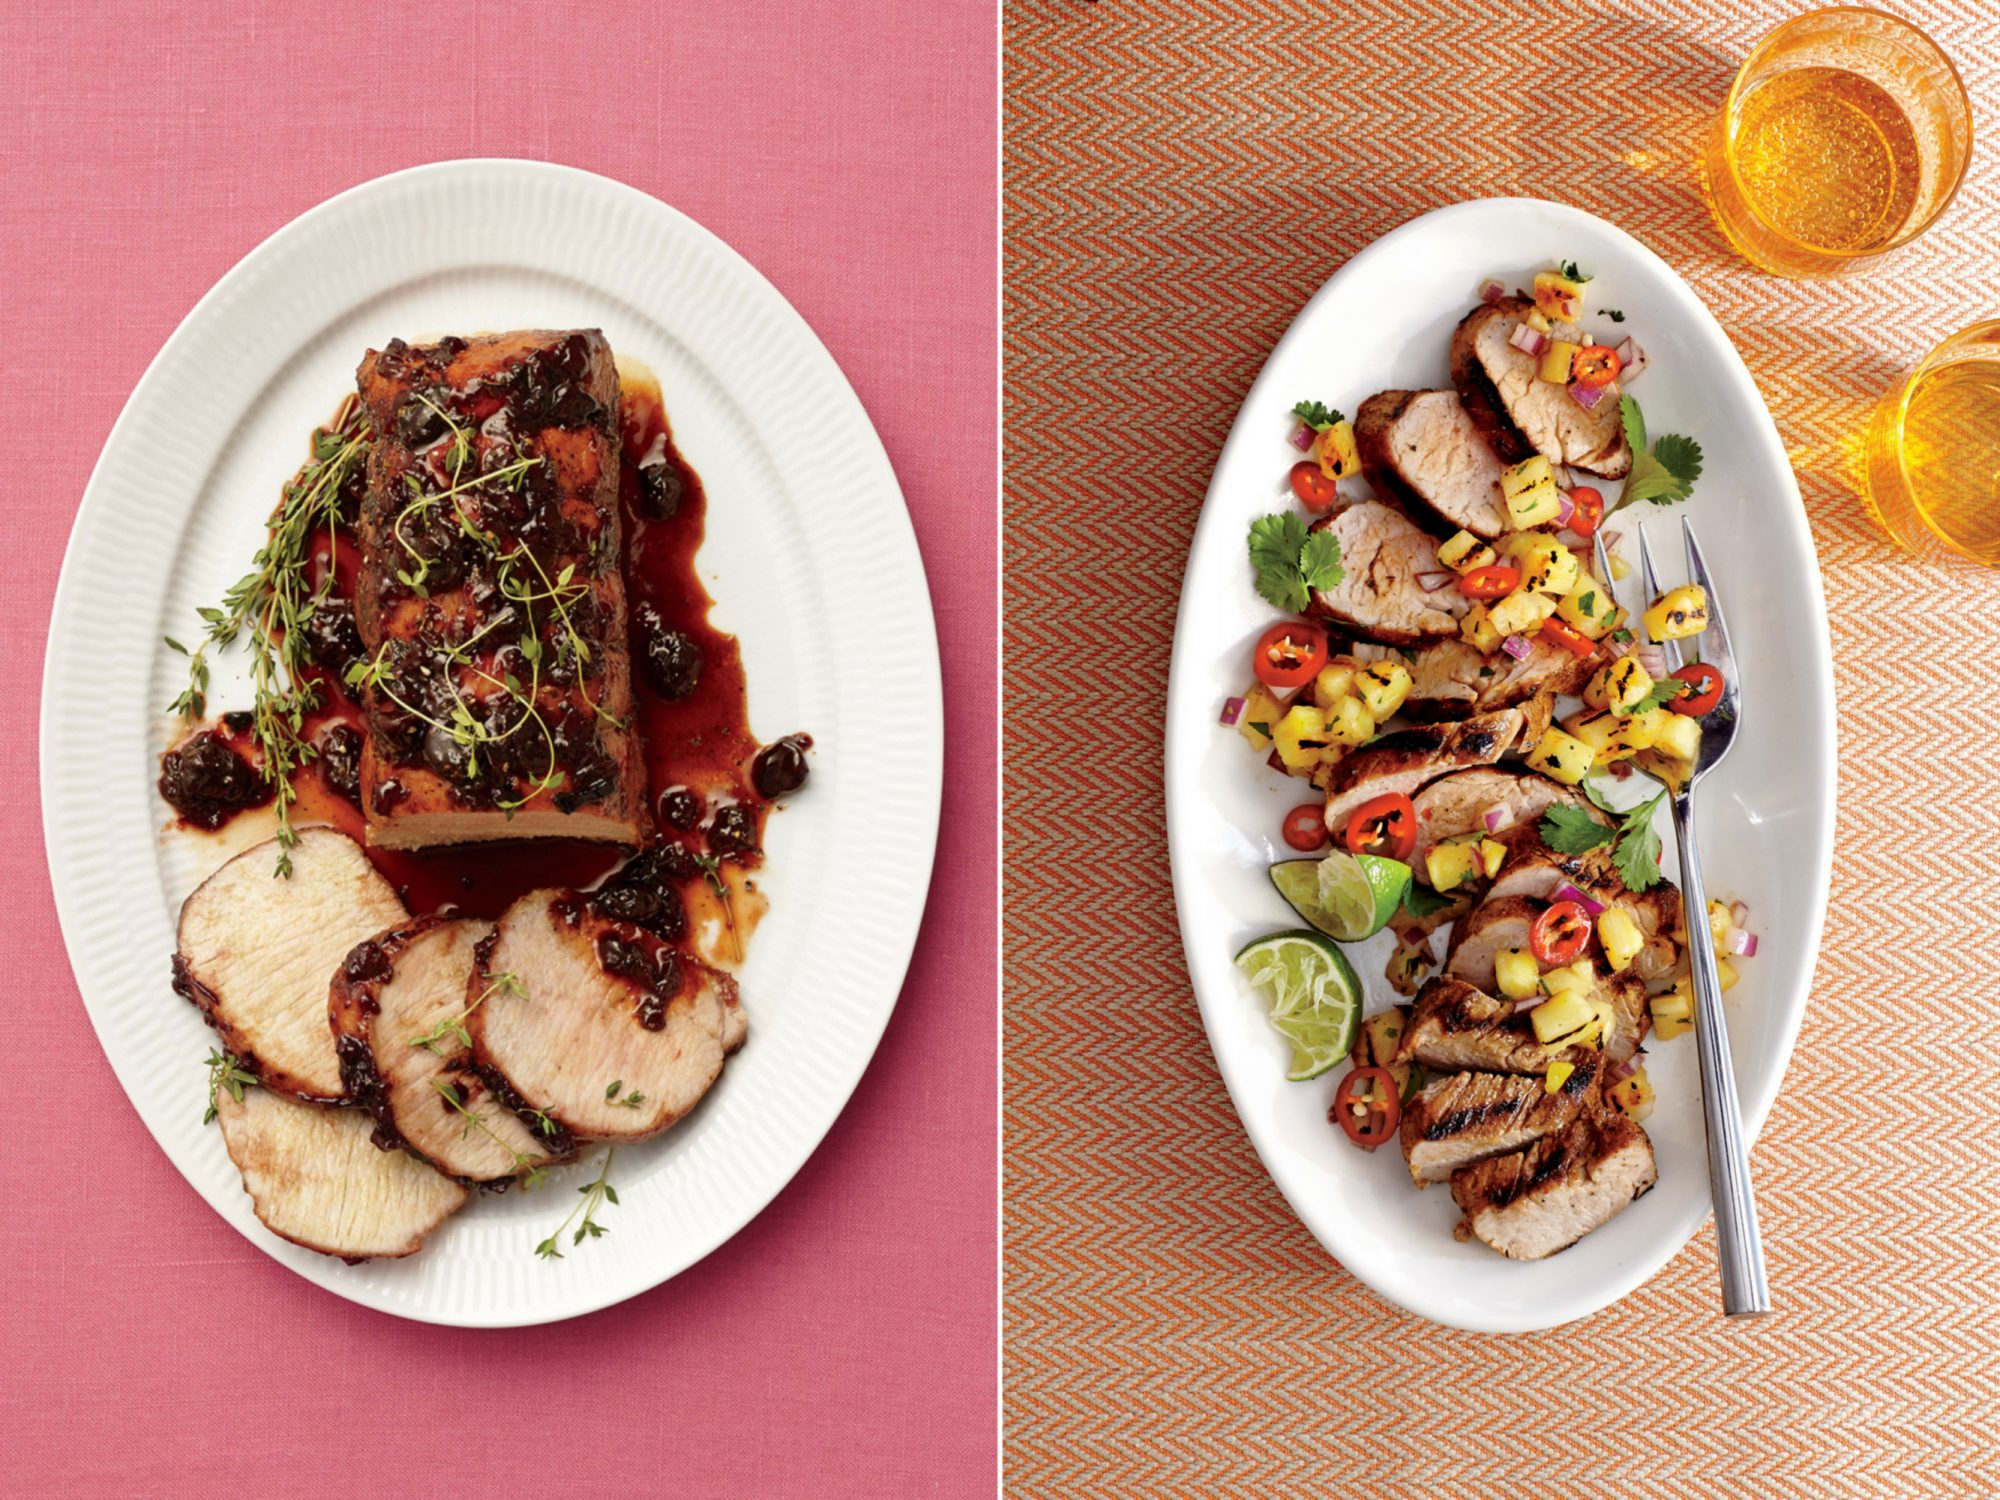 Pork Loin vs Pork Tenderloin